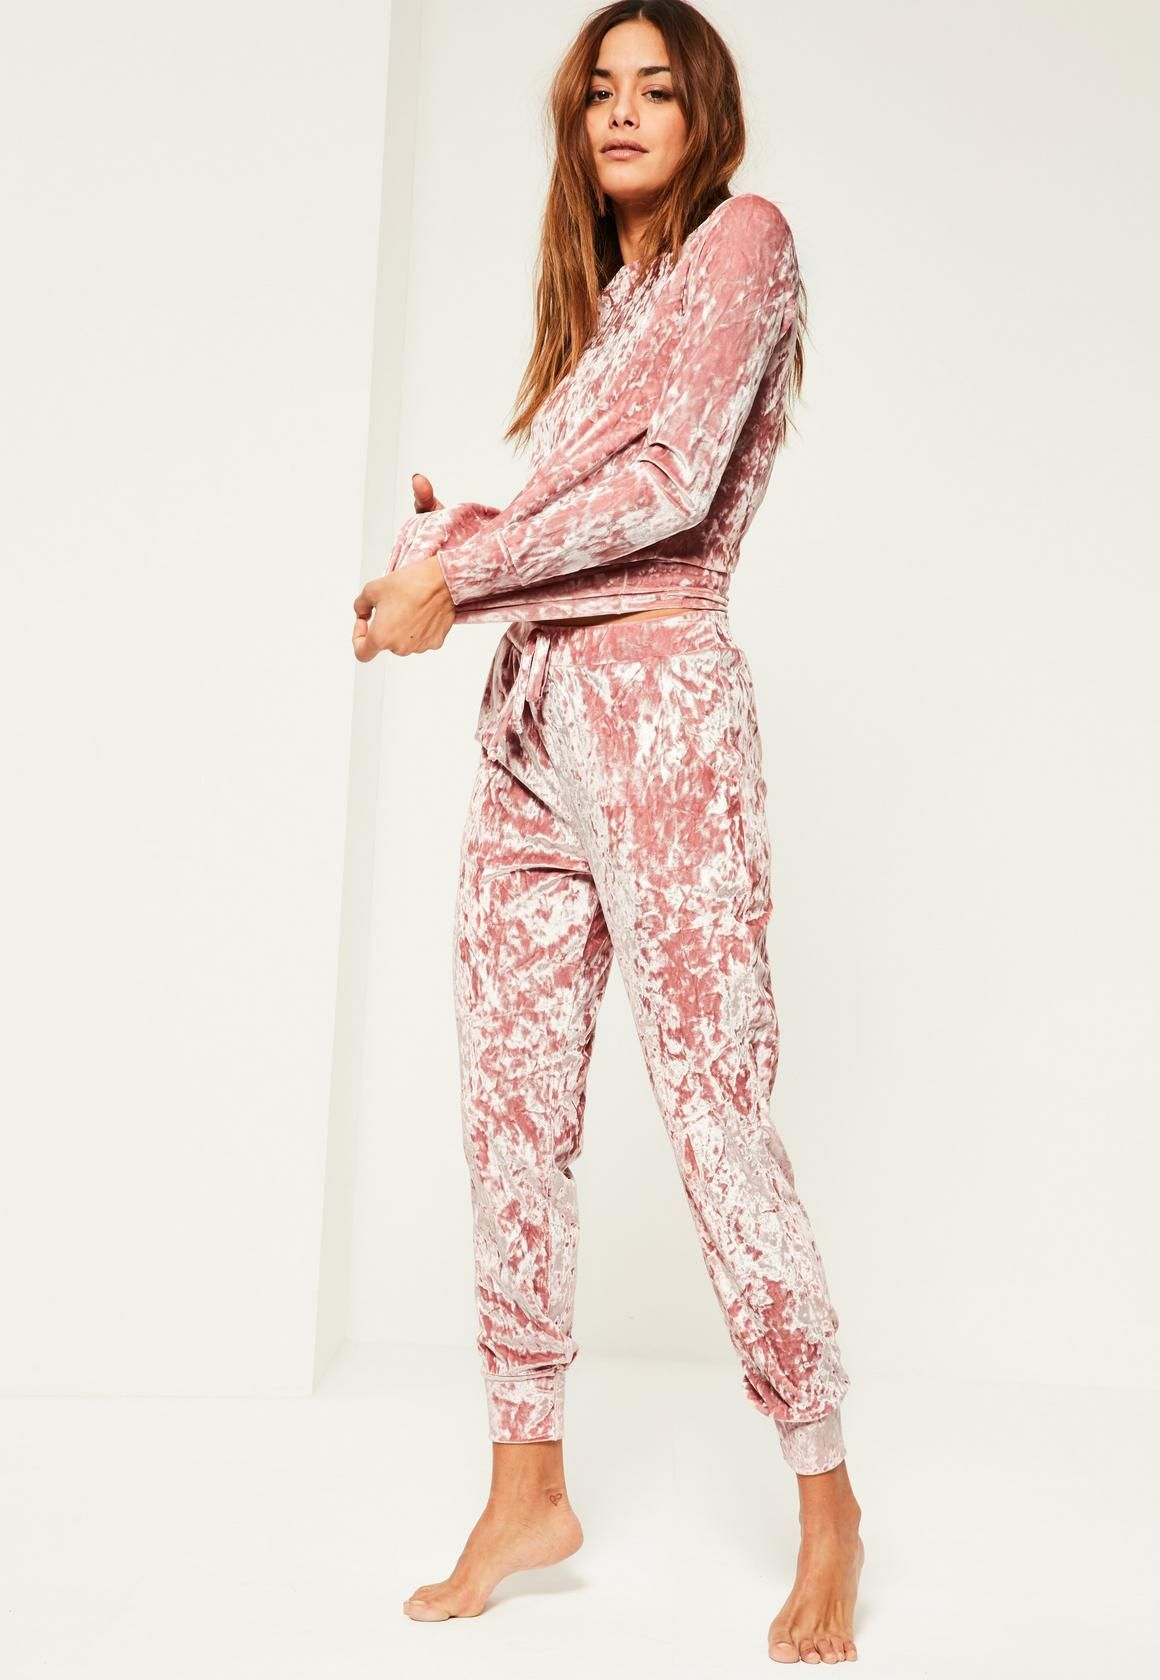 Missguided - Pink Velvet Lounge Tracksuit | Outfits❤ | Pinterest ...